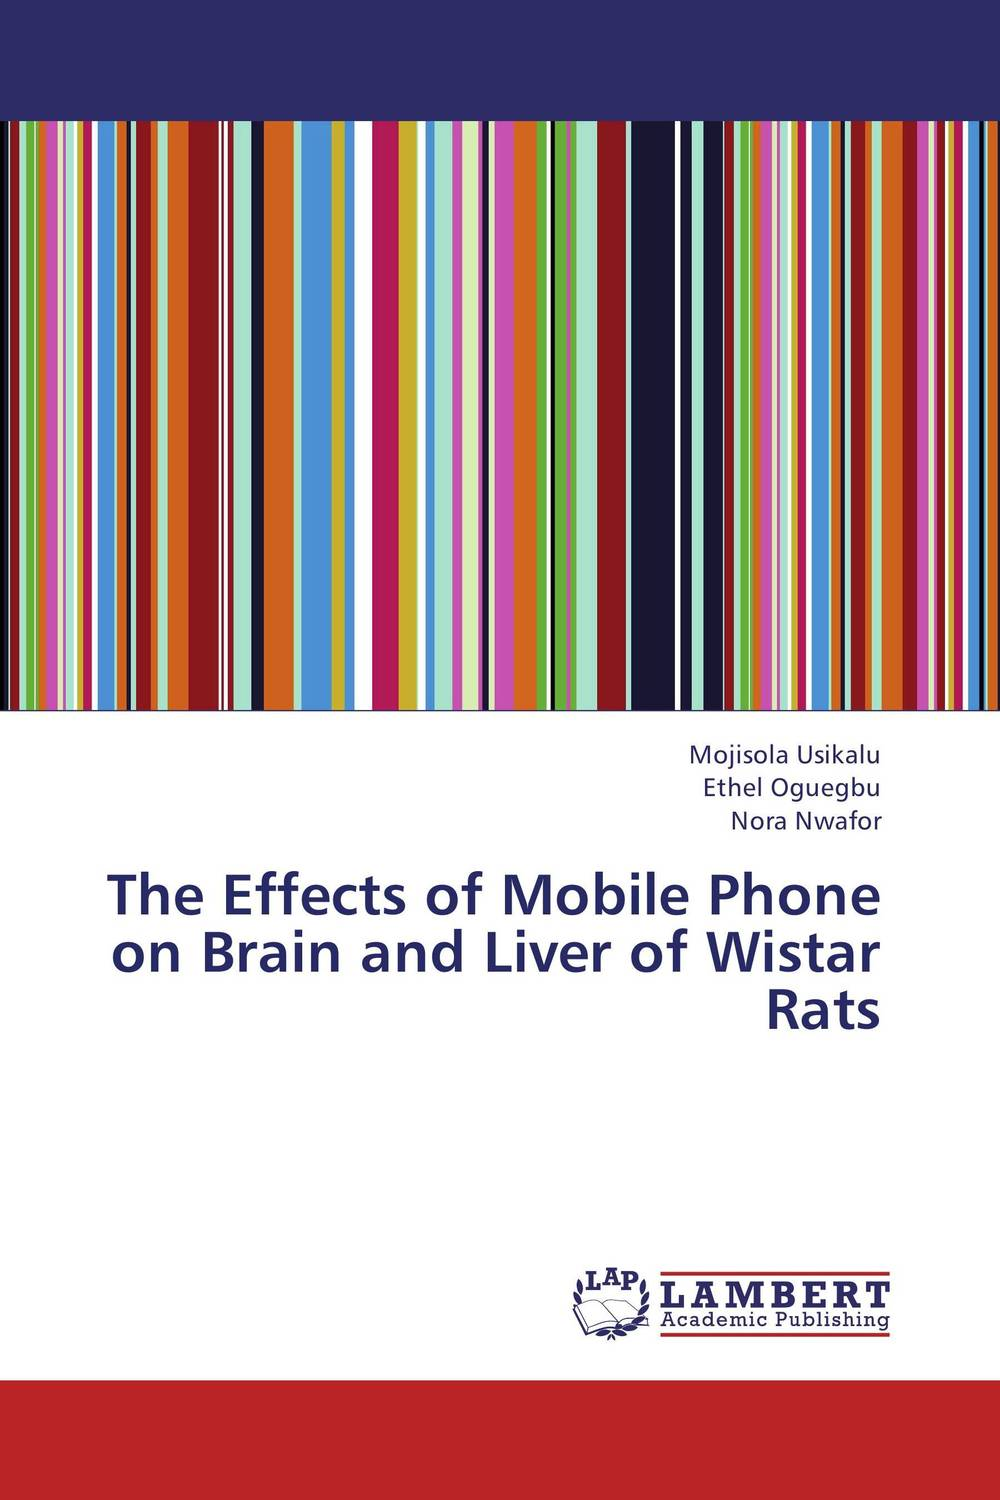 купить The Effects of Mobile Phone on Brain and Liver of Wistar Rats недорого